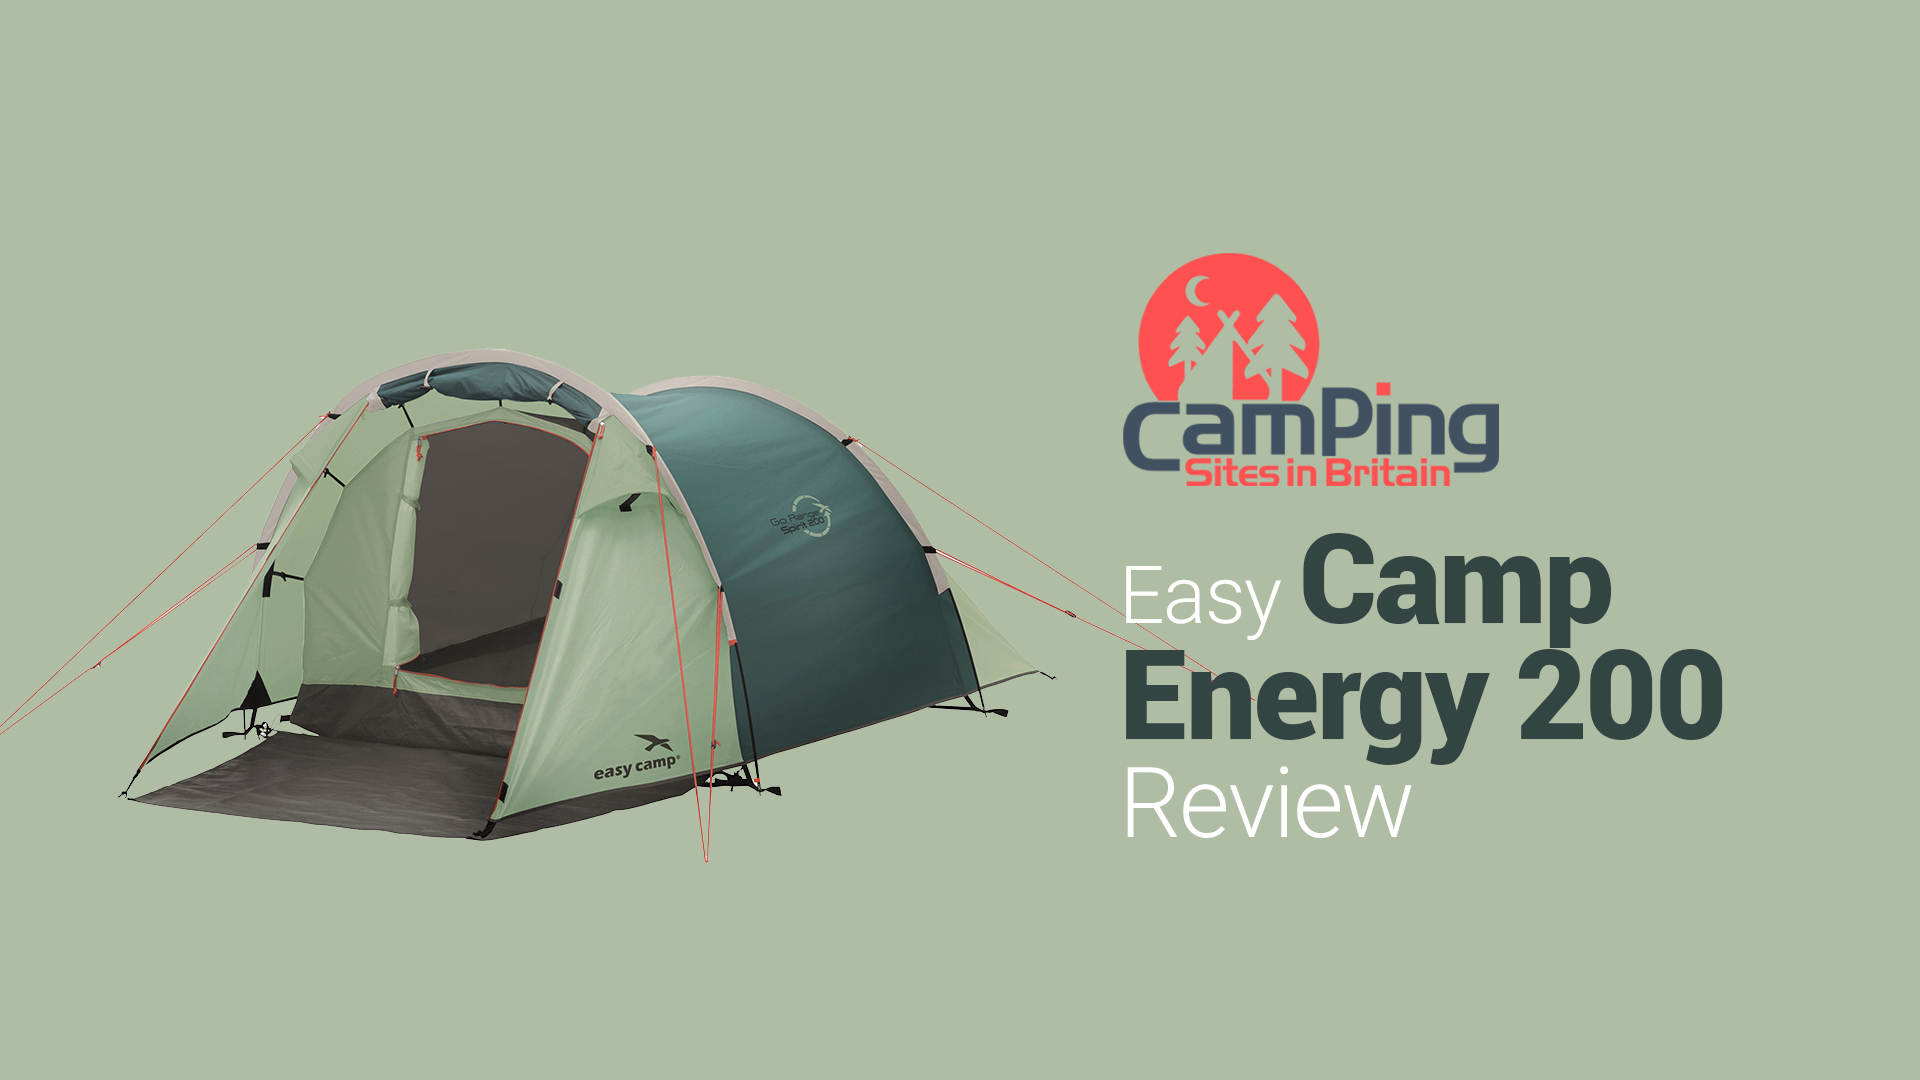 Easy Camp Energy 200 Review